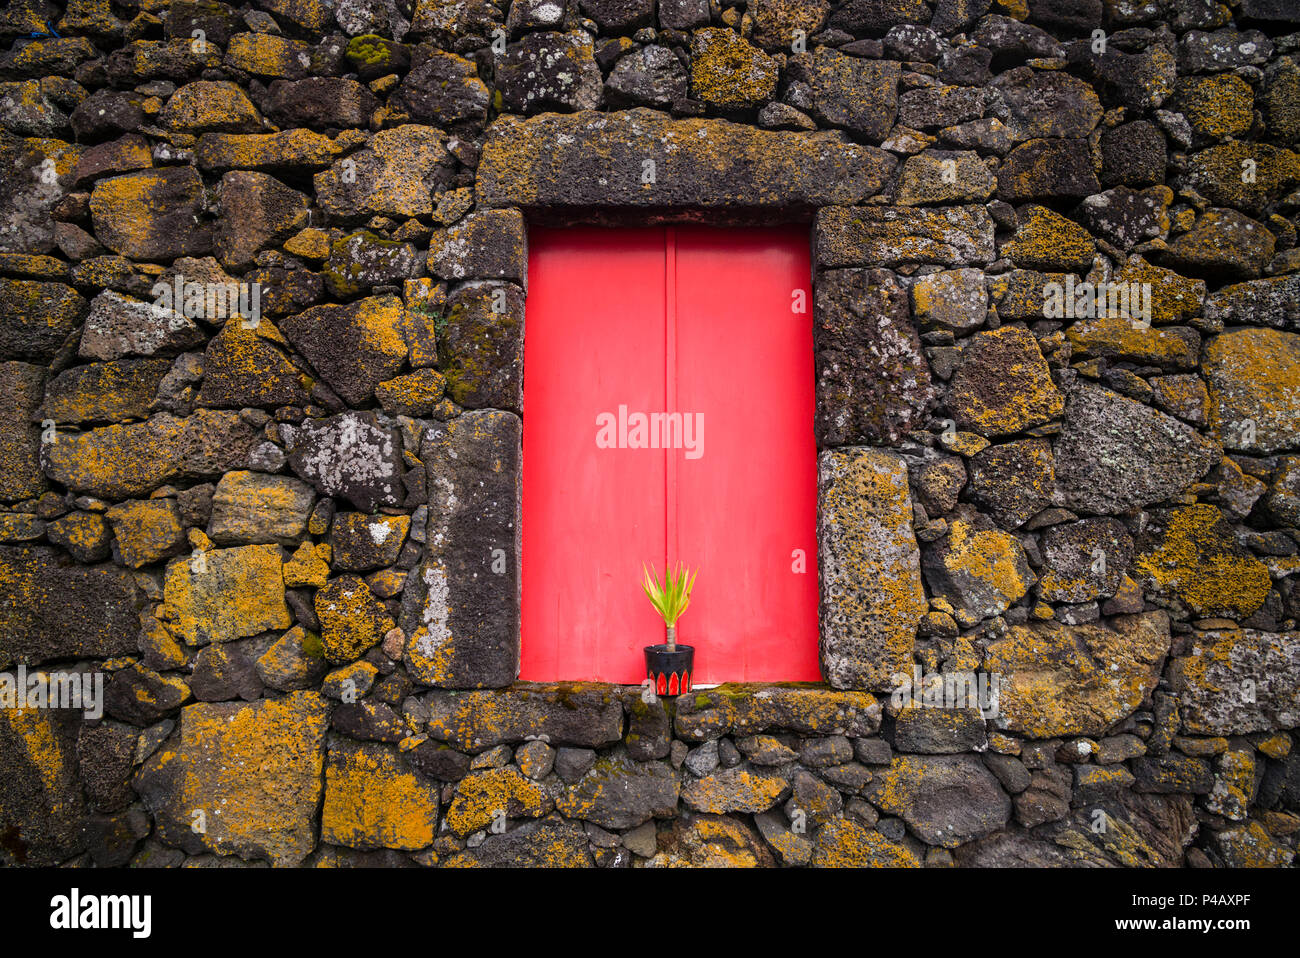 Portugal, Azores, Pico Island, Madalena, red doors on barn - Stock Image